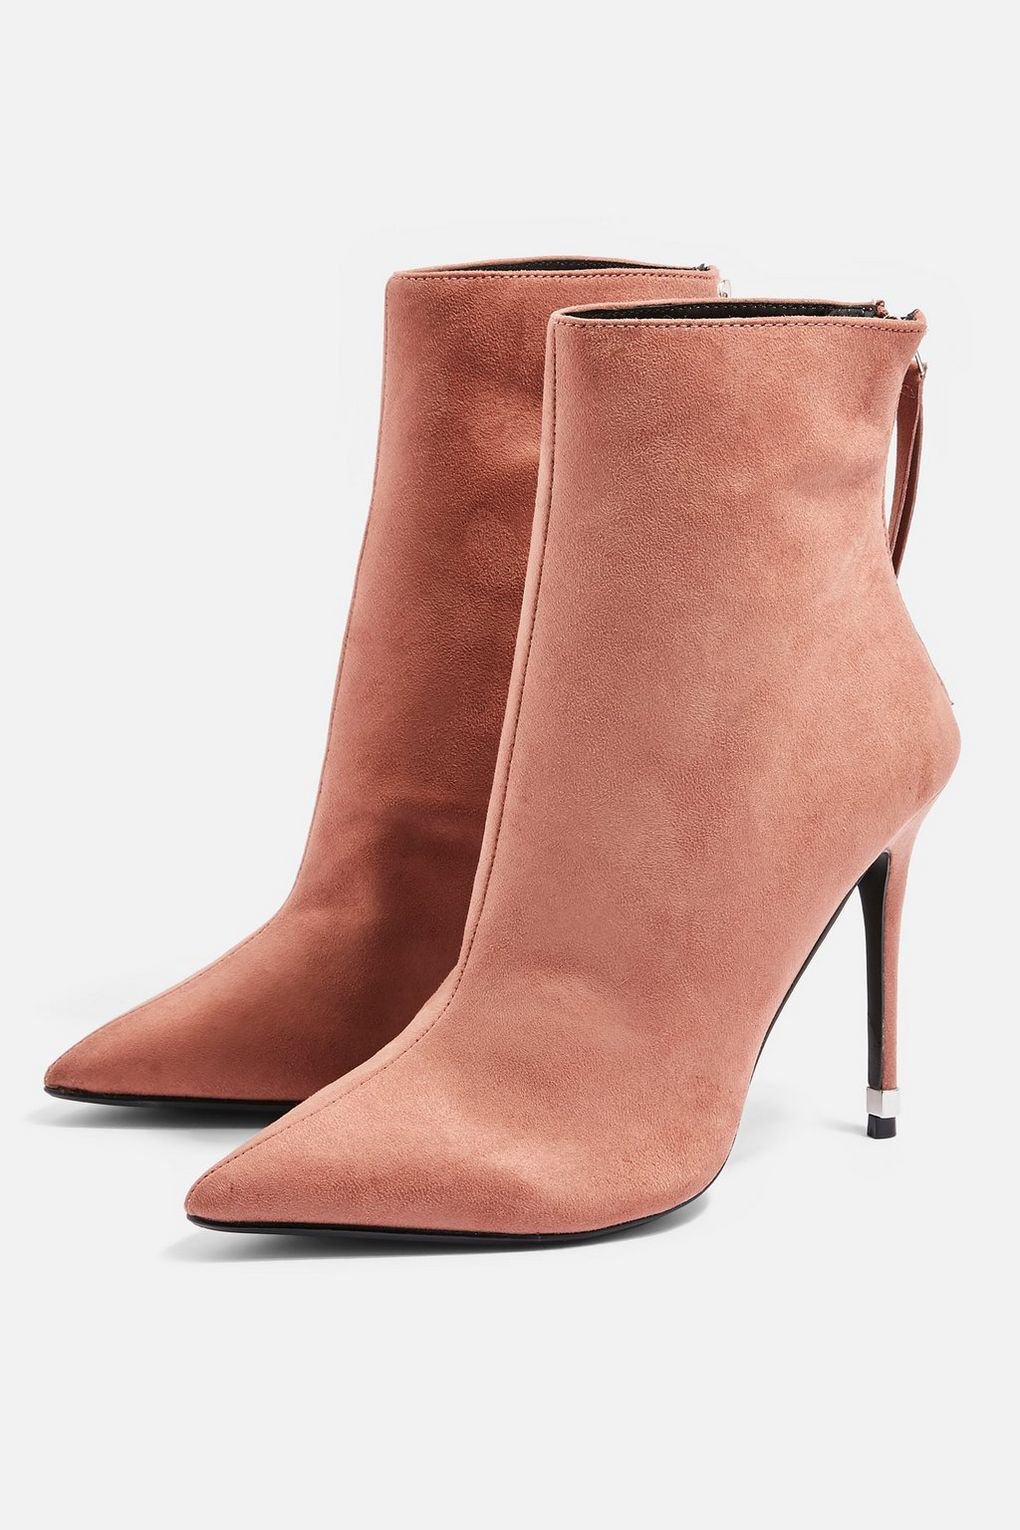 ELLA Pointed Ankle Boots - Shoes- Topshop